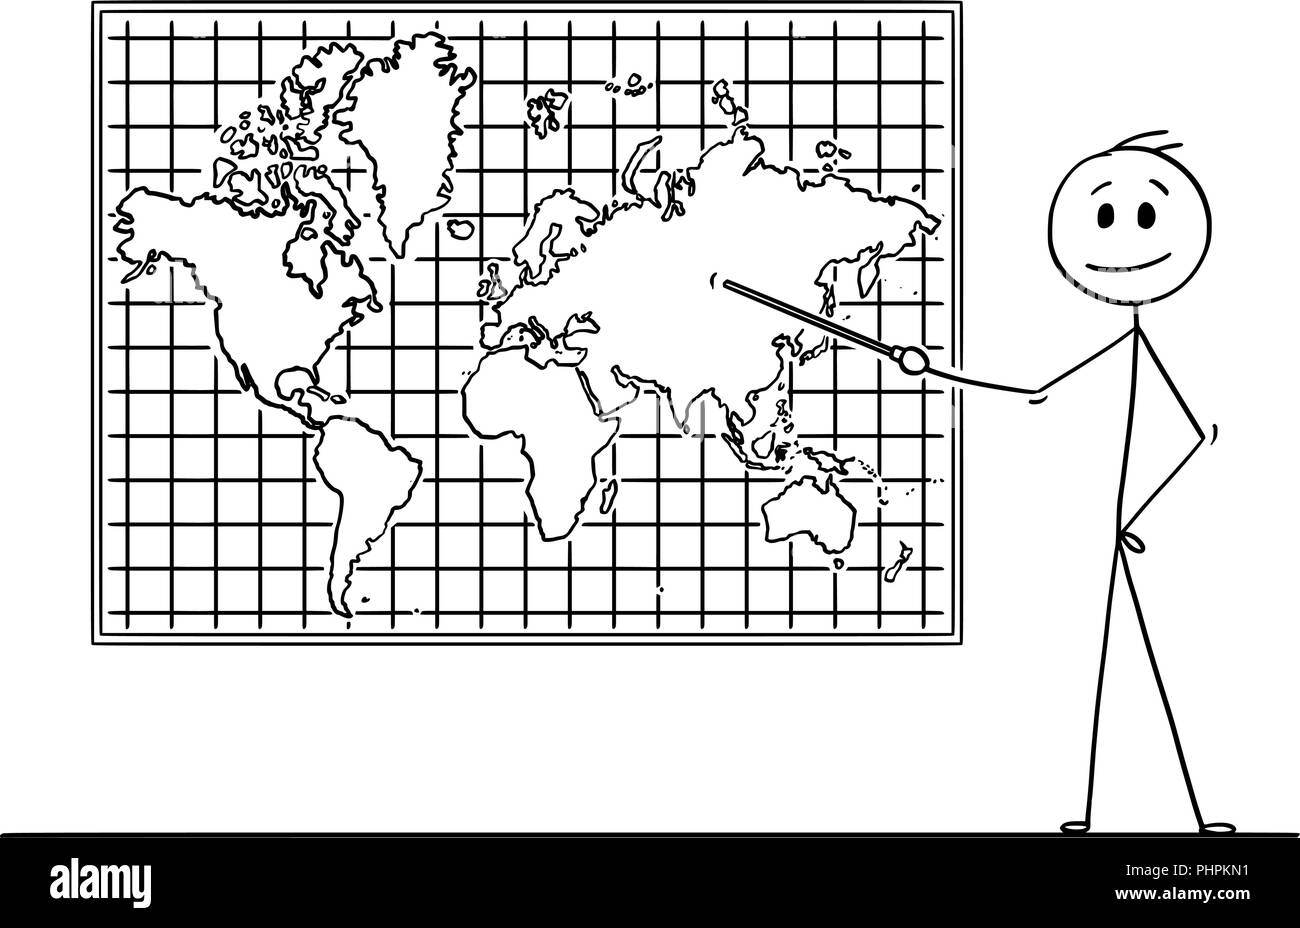 Cartoon of Man Pointing at Asia Continent on Wall World Map - Stock Vector